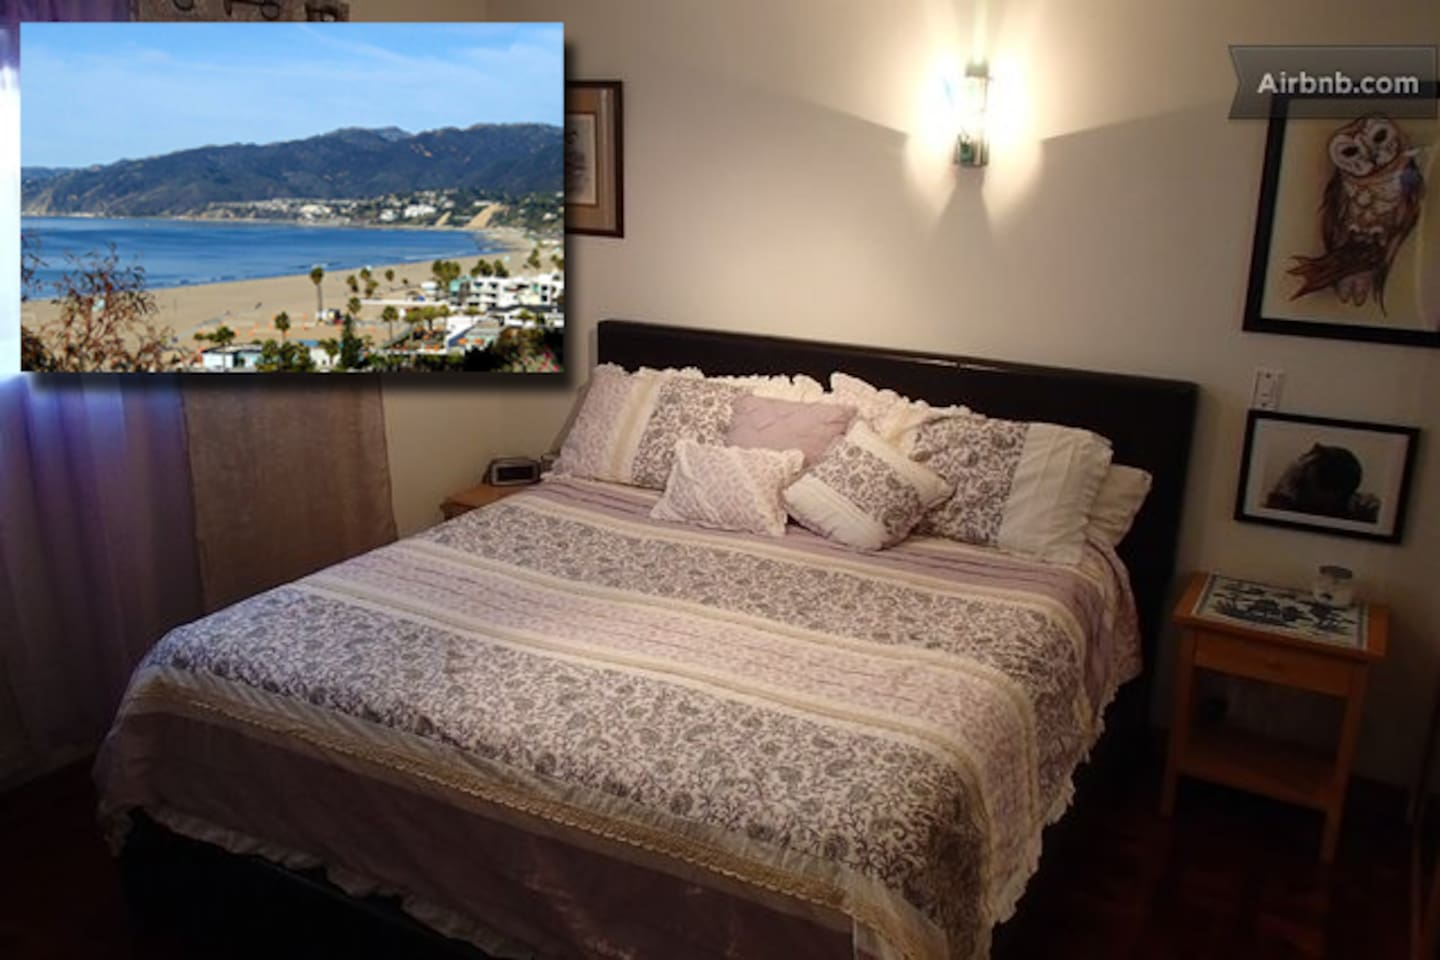 Relax in the master bedroom (king bed) or walk 5 blocks to the beach (Note: apartment does not have a direct ocean view)